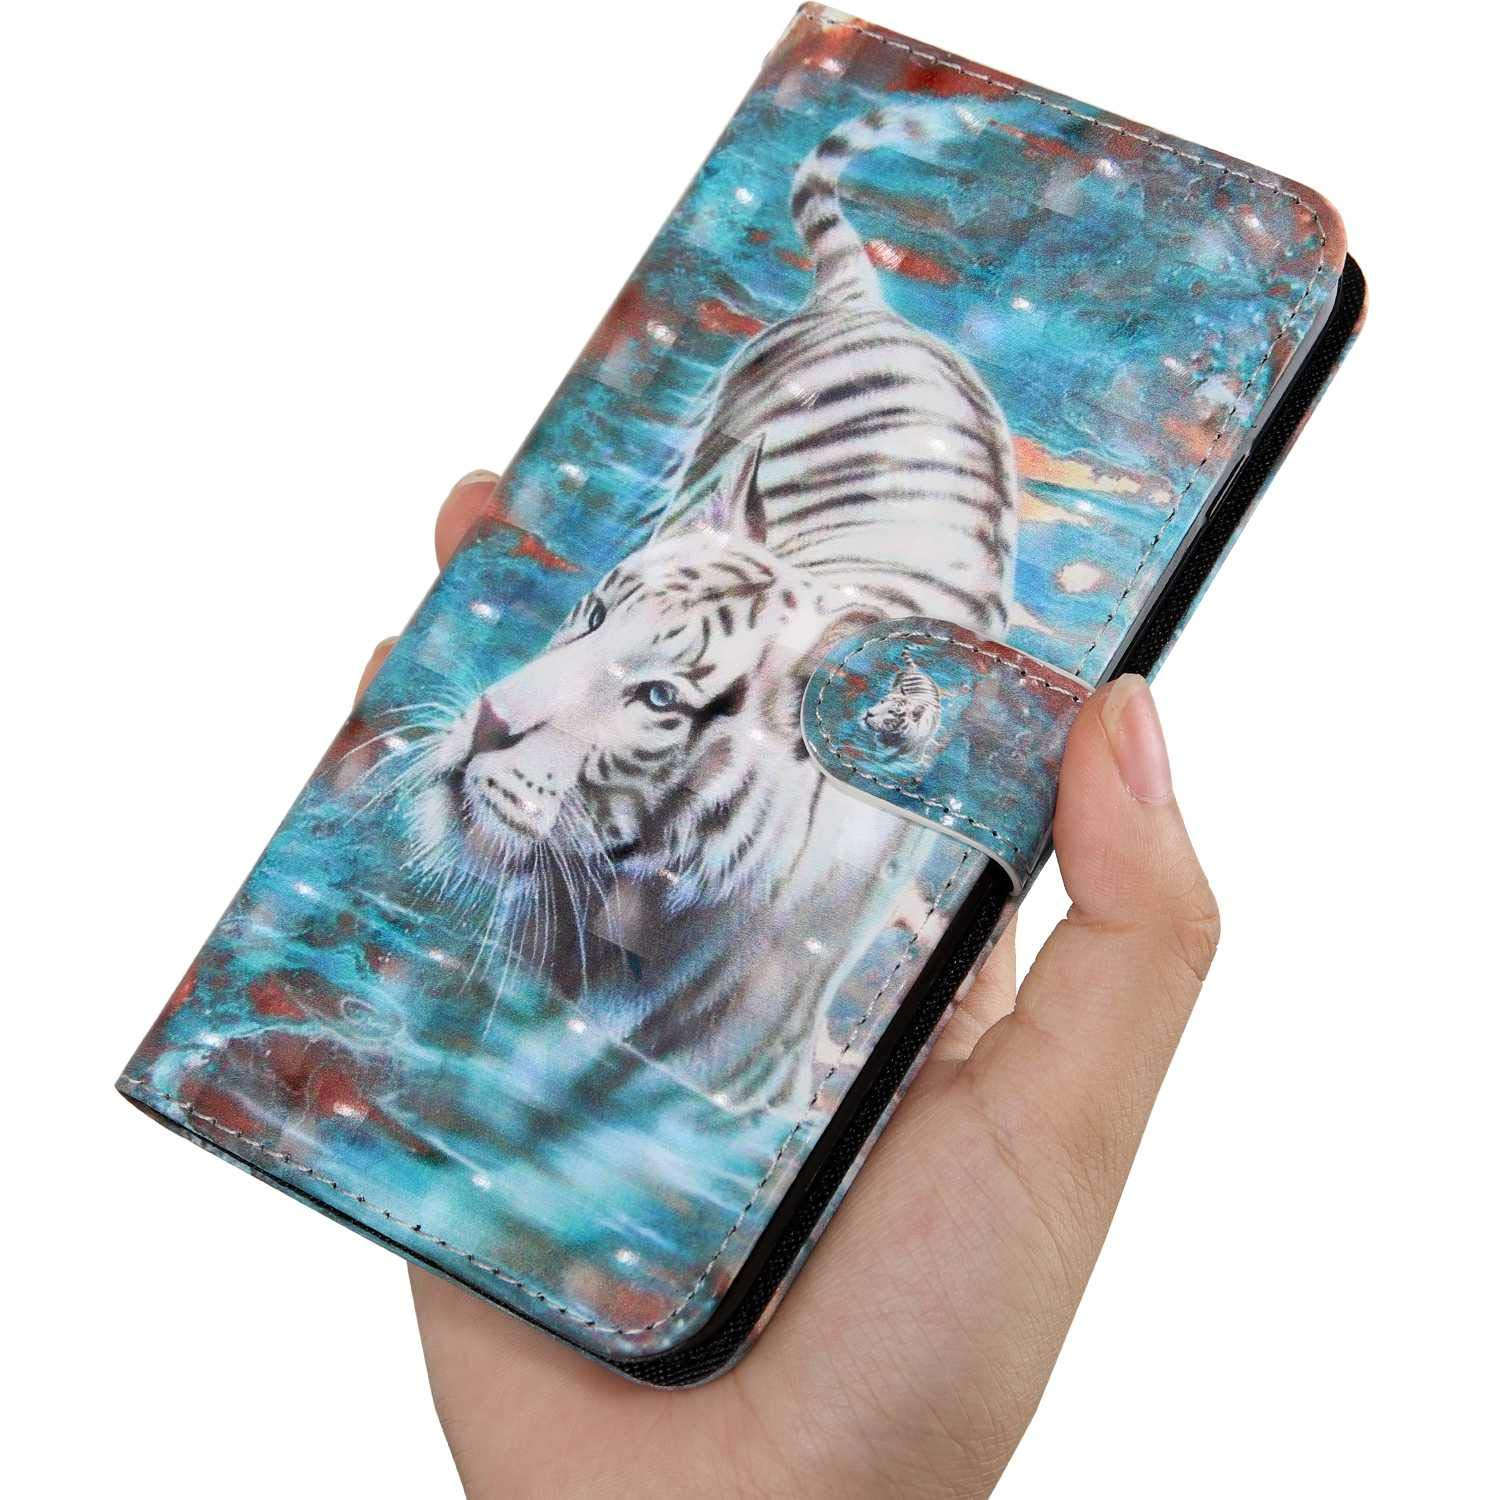 3D Pattern Design Wallet Flip Case for Samsung Galaxy S10+ // Plus #10 Panda Bear Village/® Galaxy S10+ // Plus Case PU Leather Book Style Cover with Free Tempered Glass Screen Protector